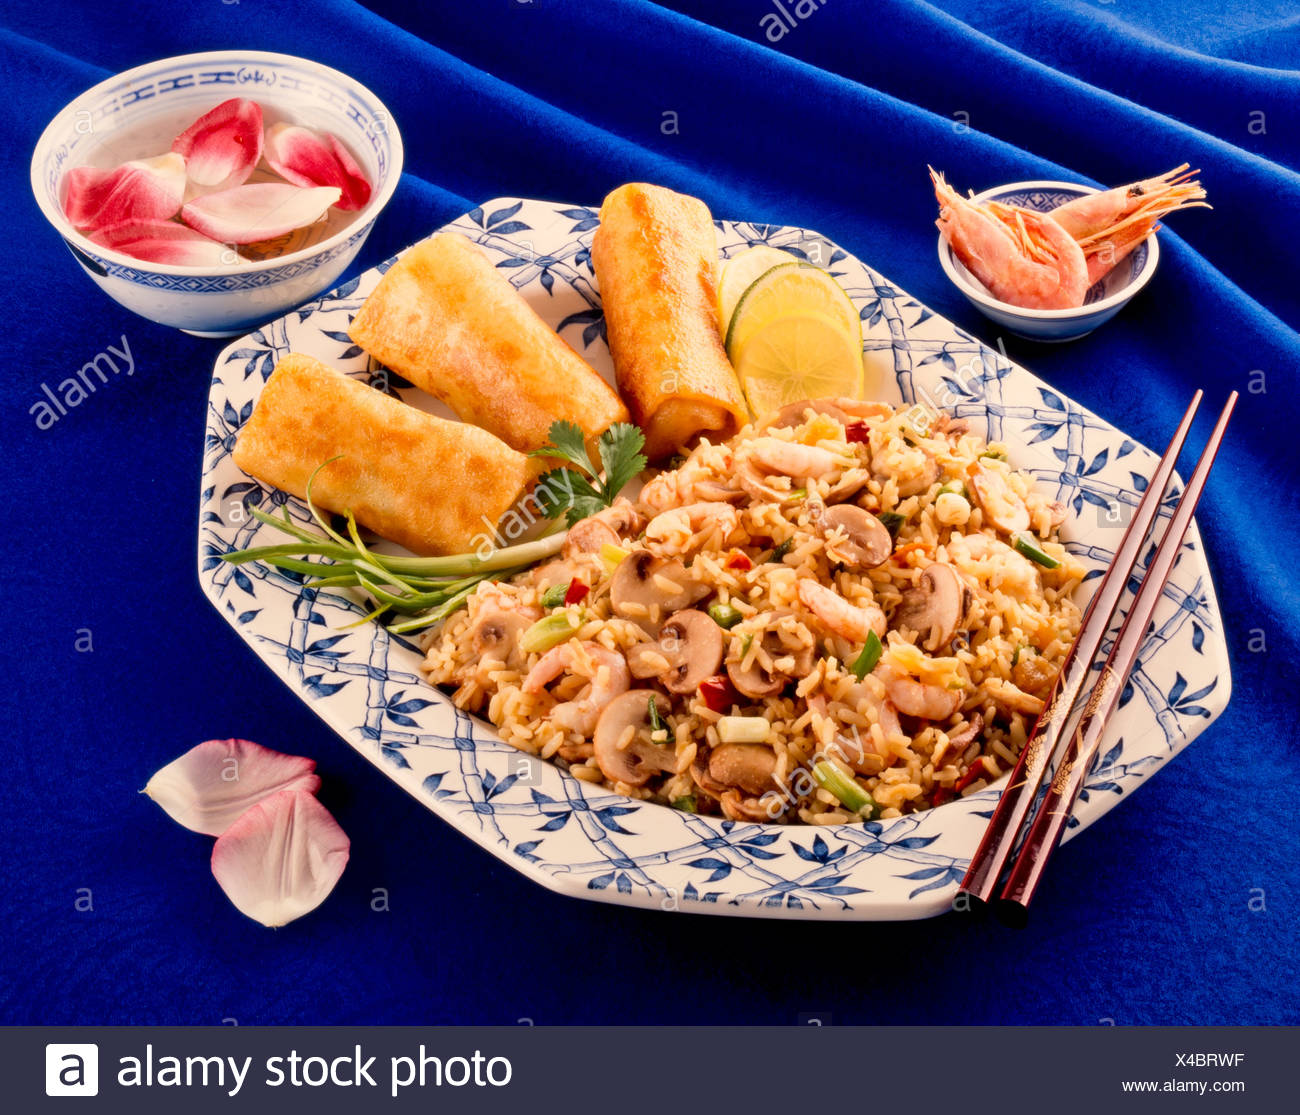 PRAWN OR SHRIMP STIR FRIED RICE WITH SPRING ROLLS - Stock Image